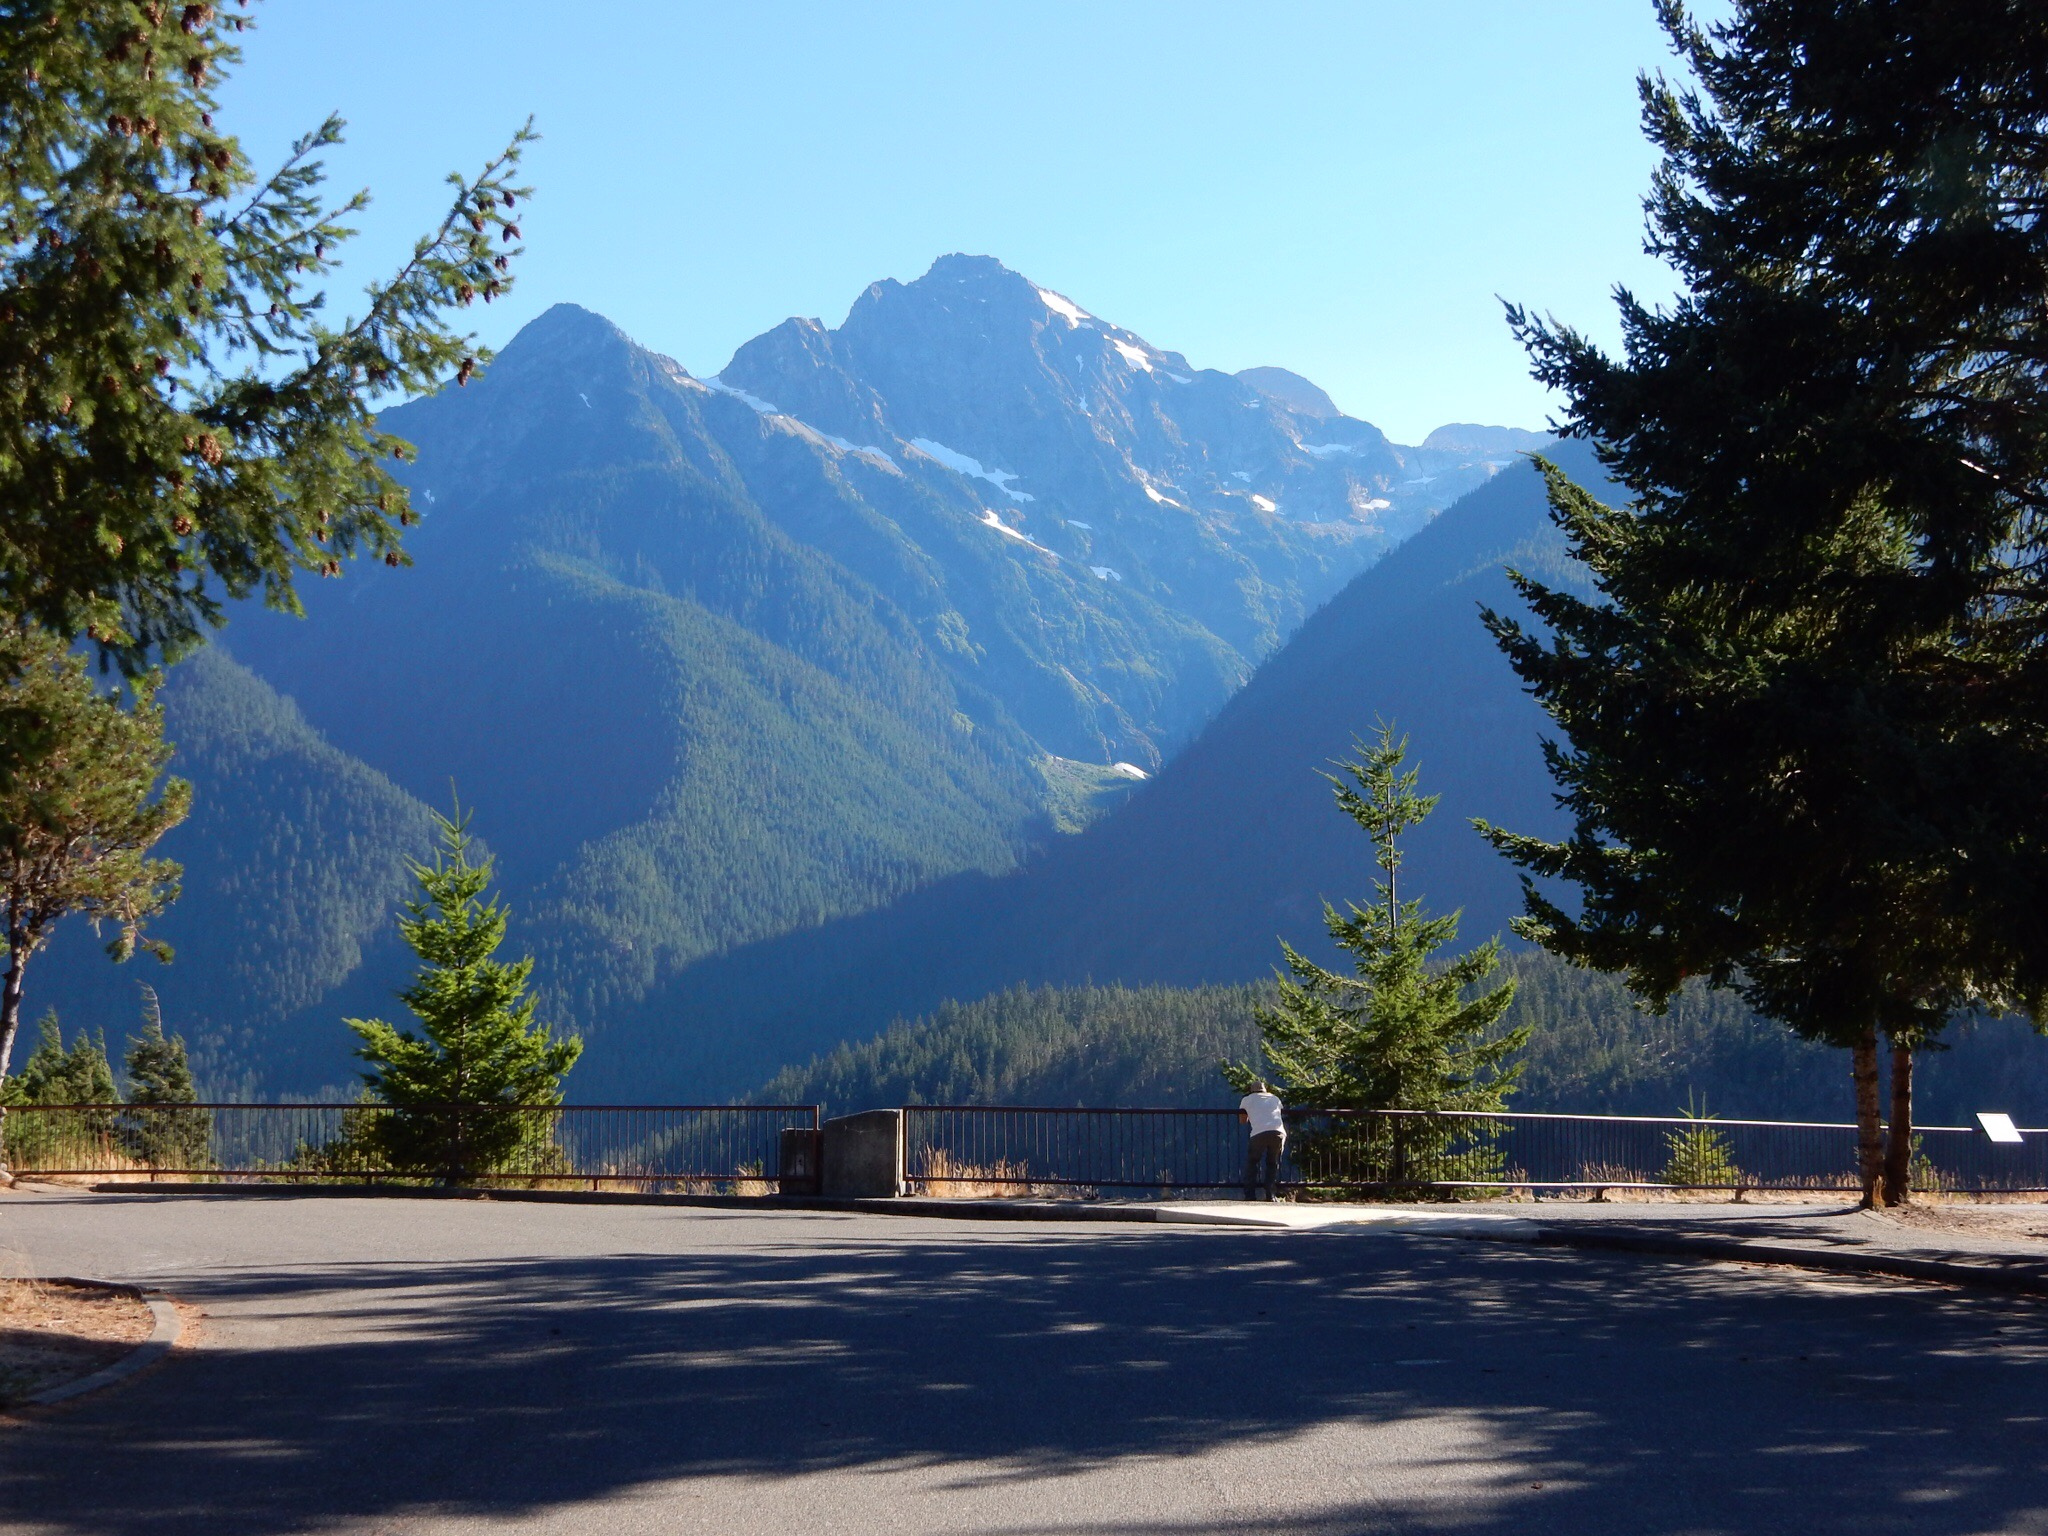 Mountain view from the Diablo Lake overview parking lot.